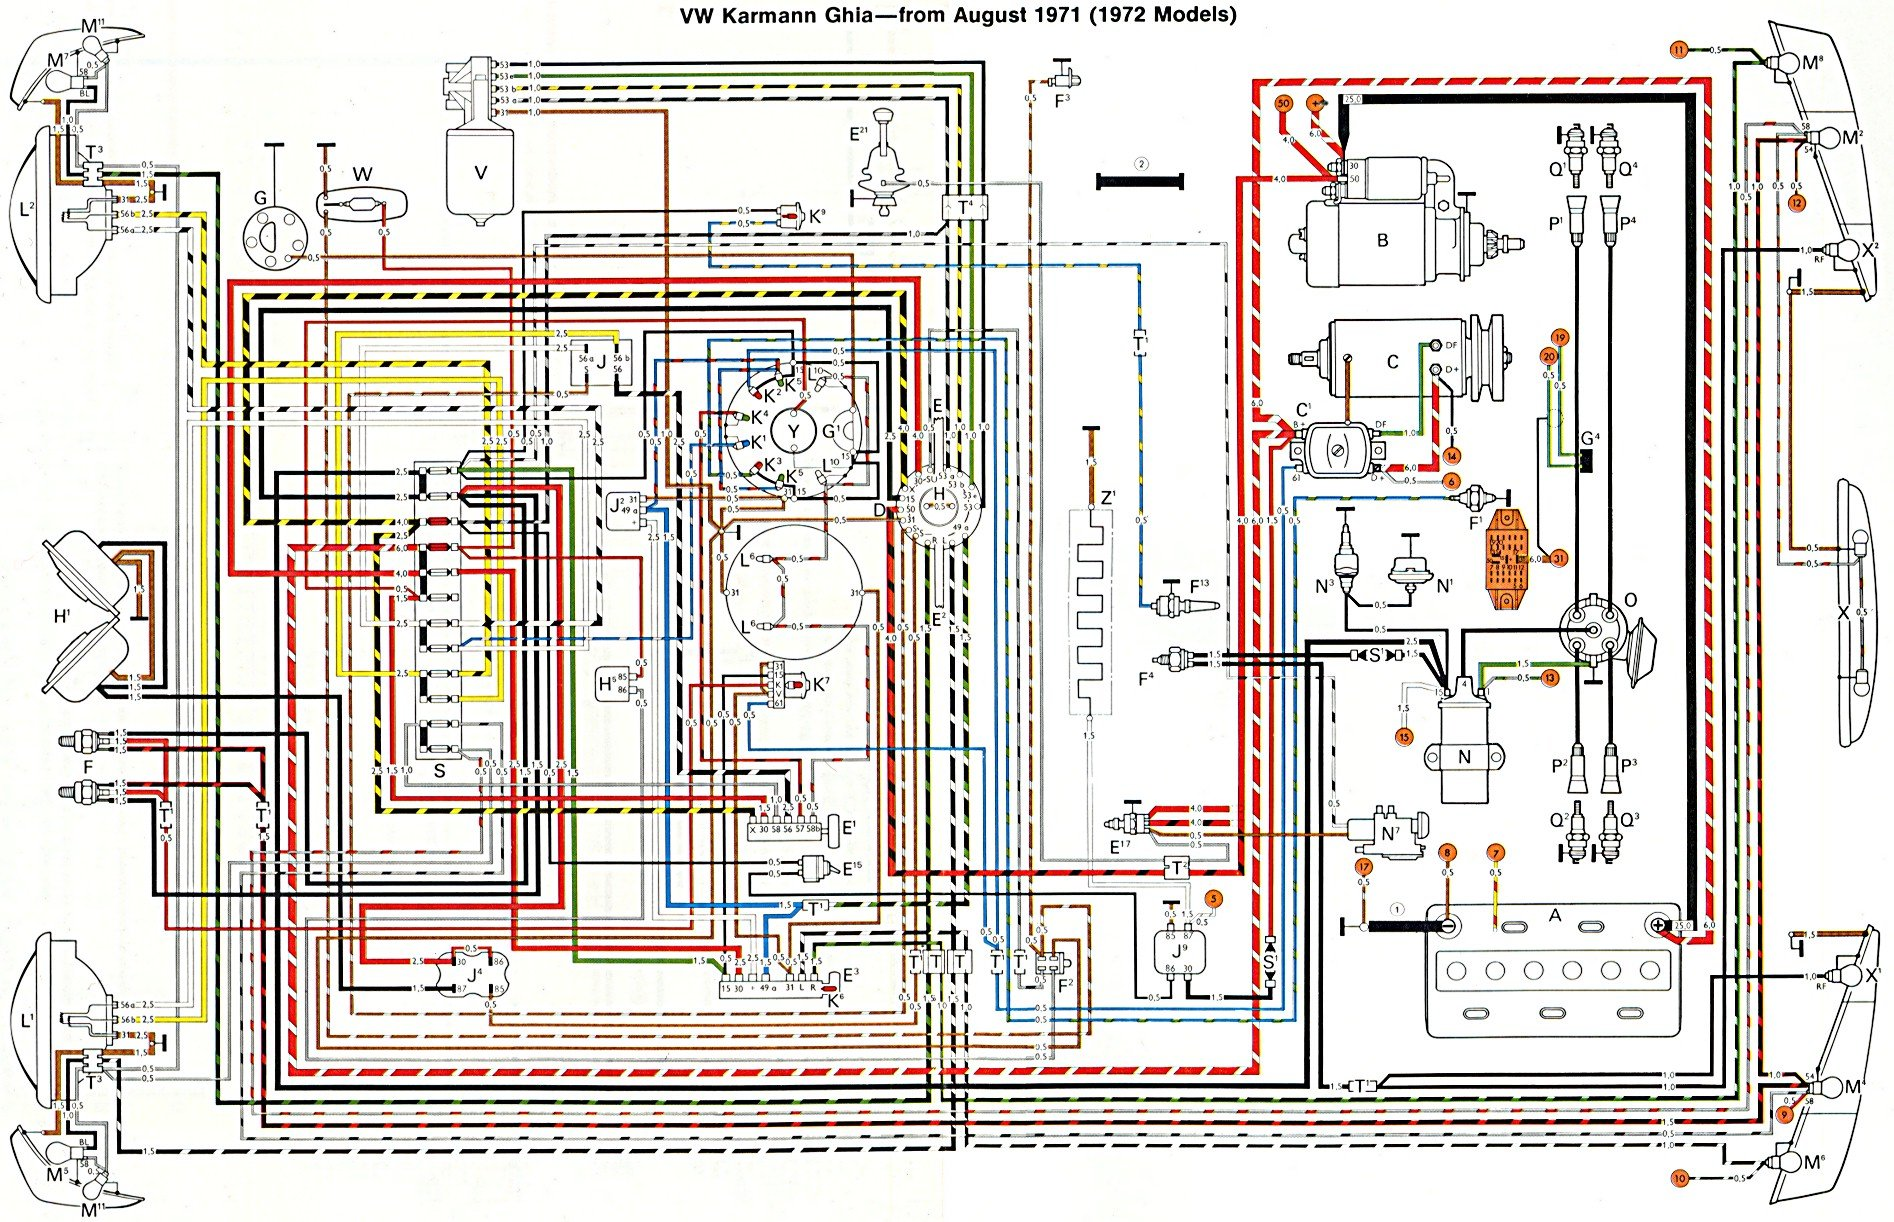 72ghia 1971 karmann ghia wiring diagram karmann ghia wiring harness Wiring Harness Diagram at sewacar.co